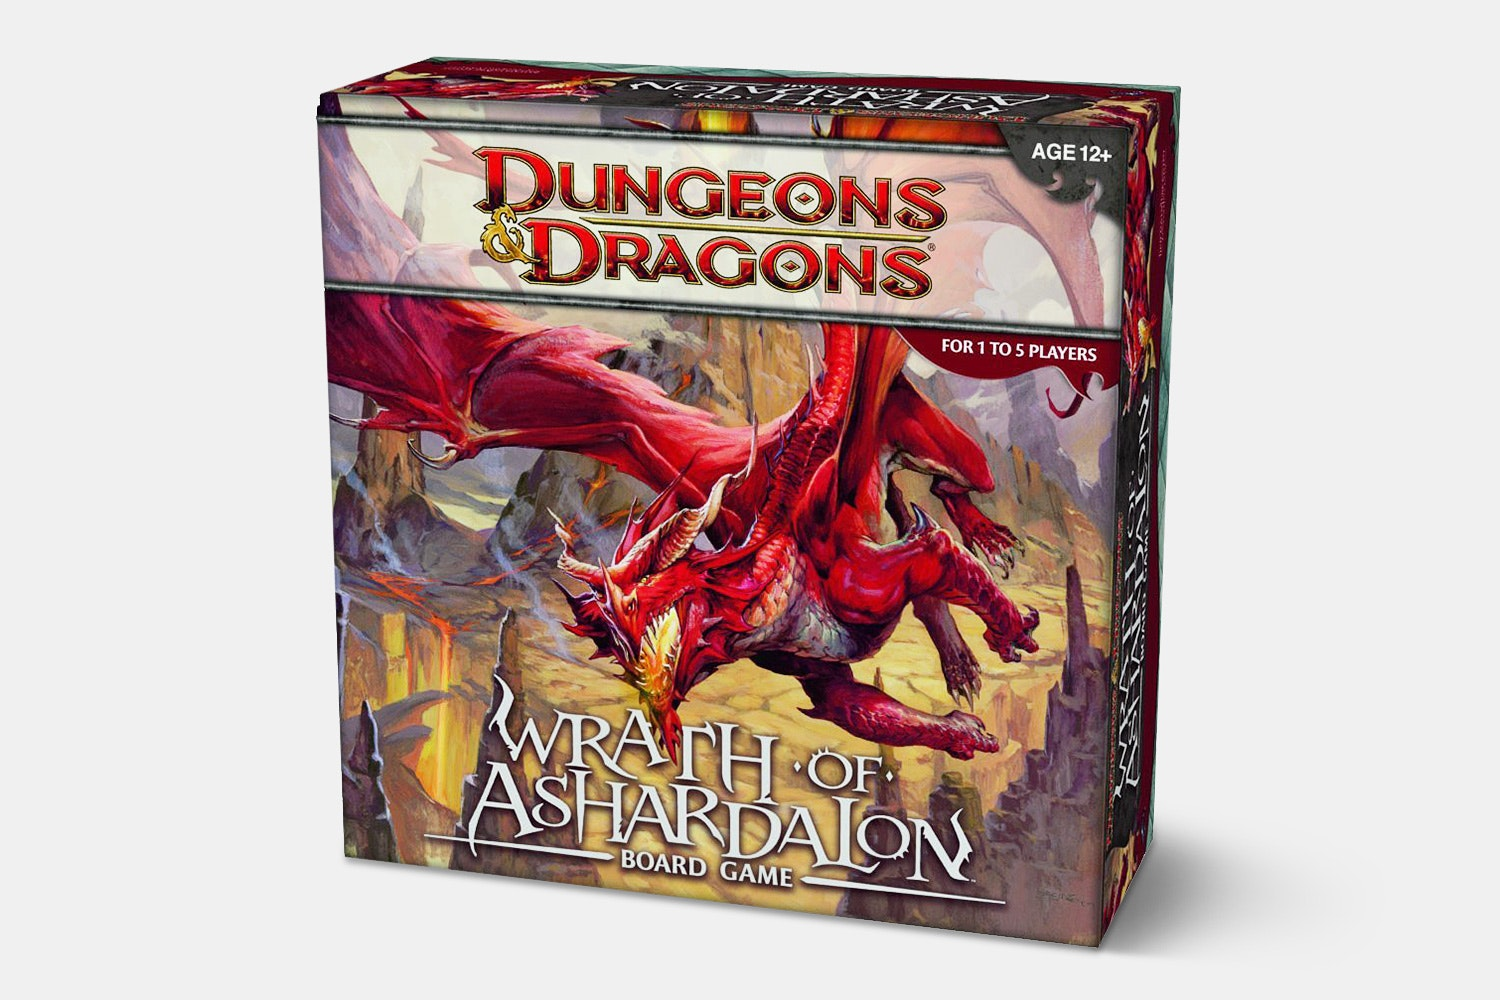 D&D: Wrath of Ashardalon & Legend of Drizzt Bundle